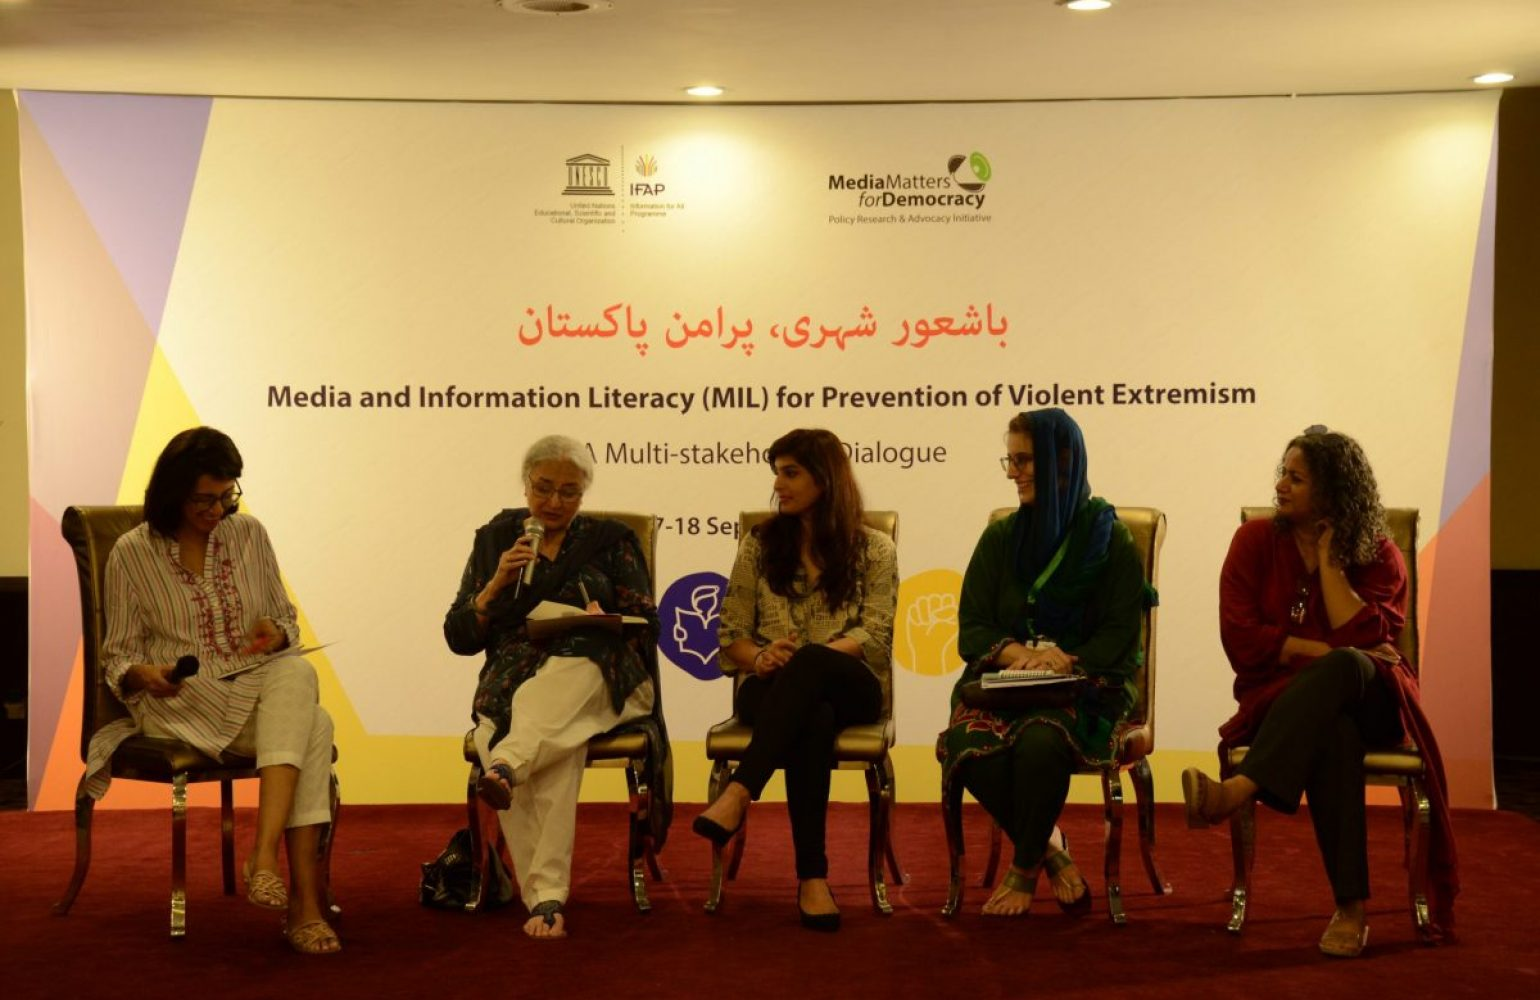 UNESCO, Media Matters for Democracy (MMFD) and Information for All Programme (IFAP) hosts a 2-day national conference on Media and Information Literacy for Prevention of Violent Extremism